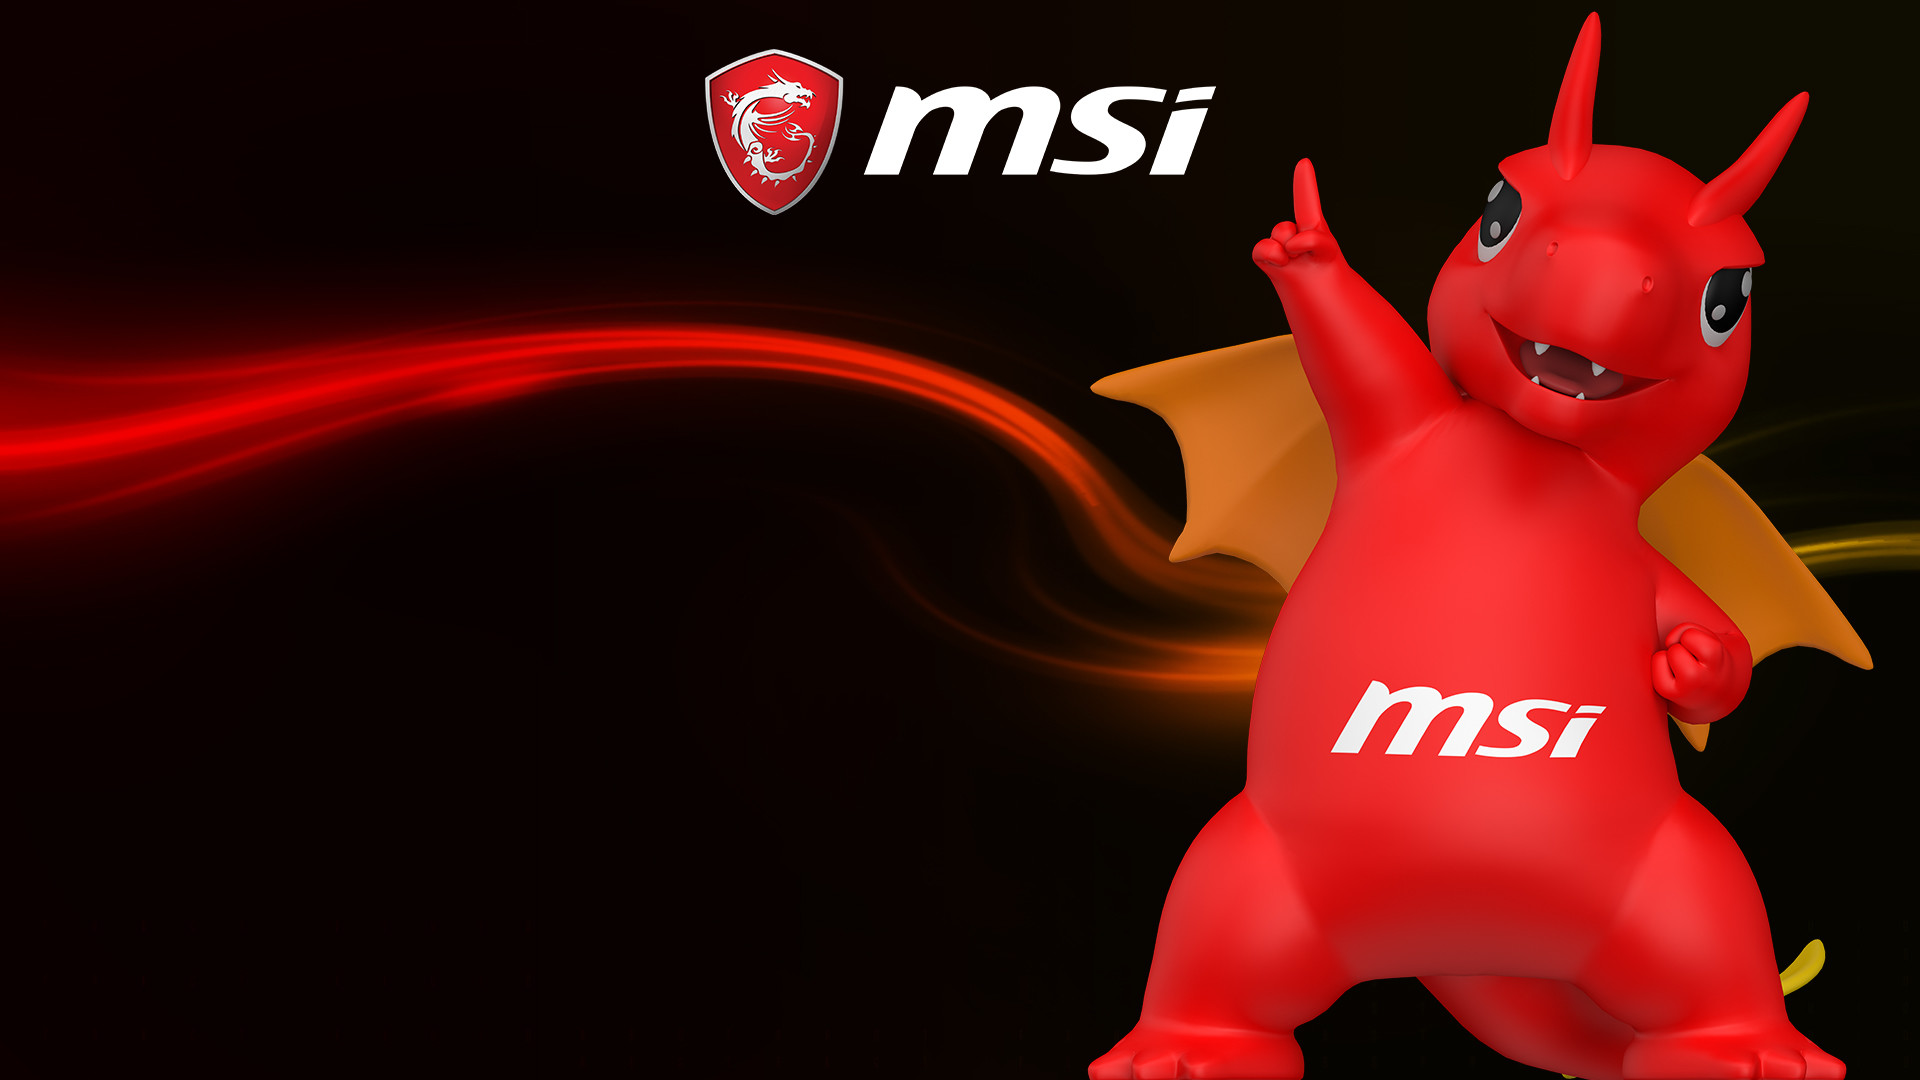 10 New Msi Gaming Series Wallpaper Full Hd 1920 1080 For: Nvidia Red Wallpaper (73+ Images